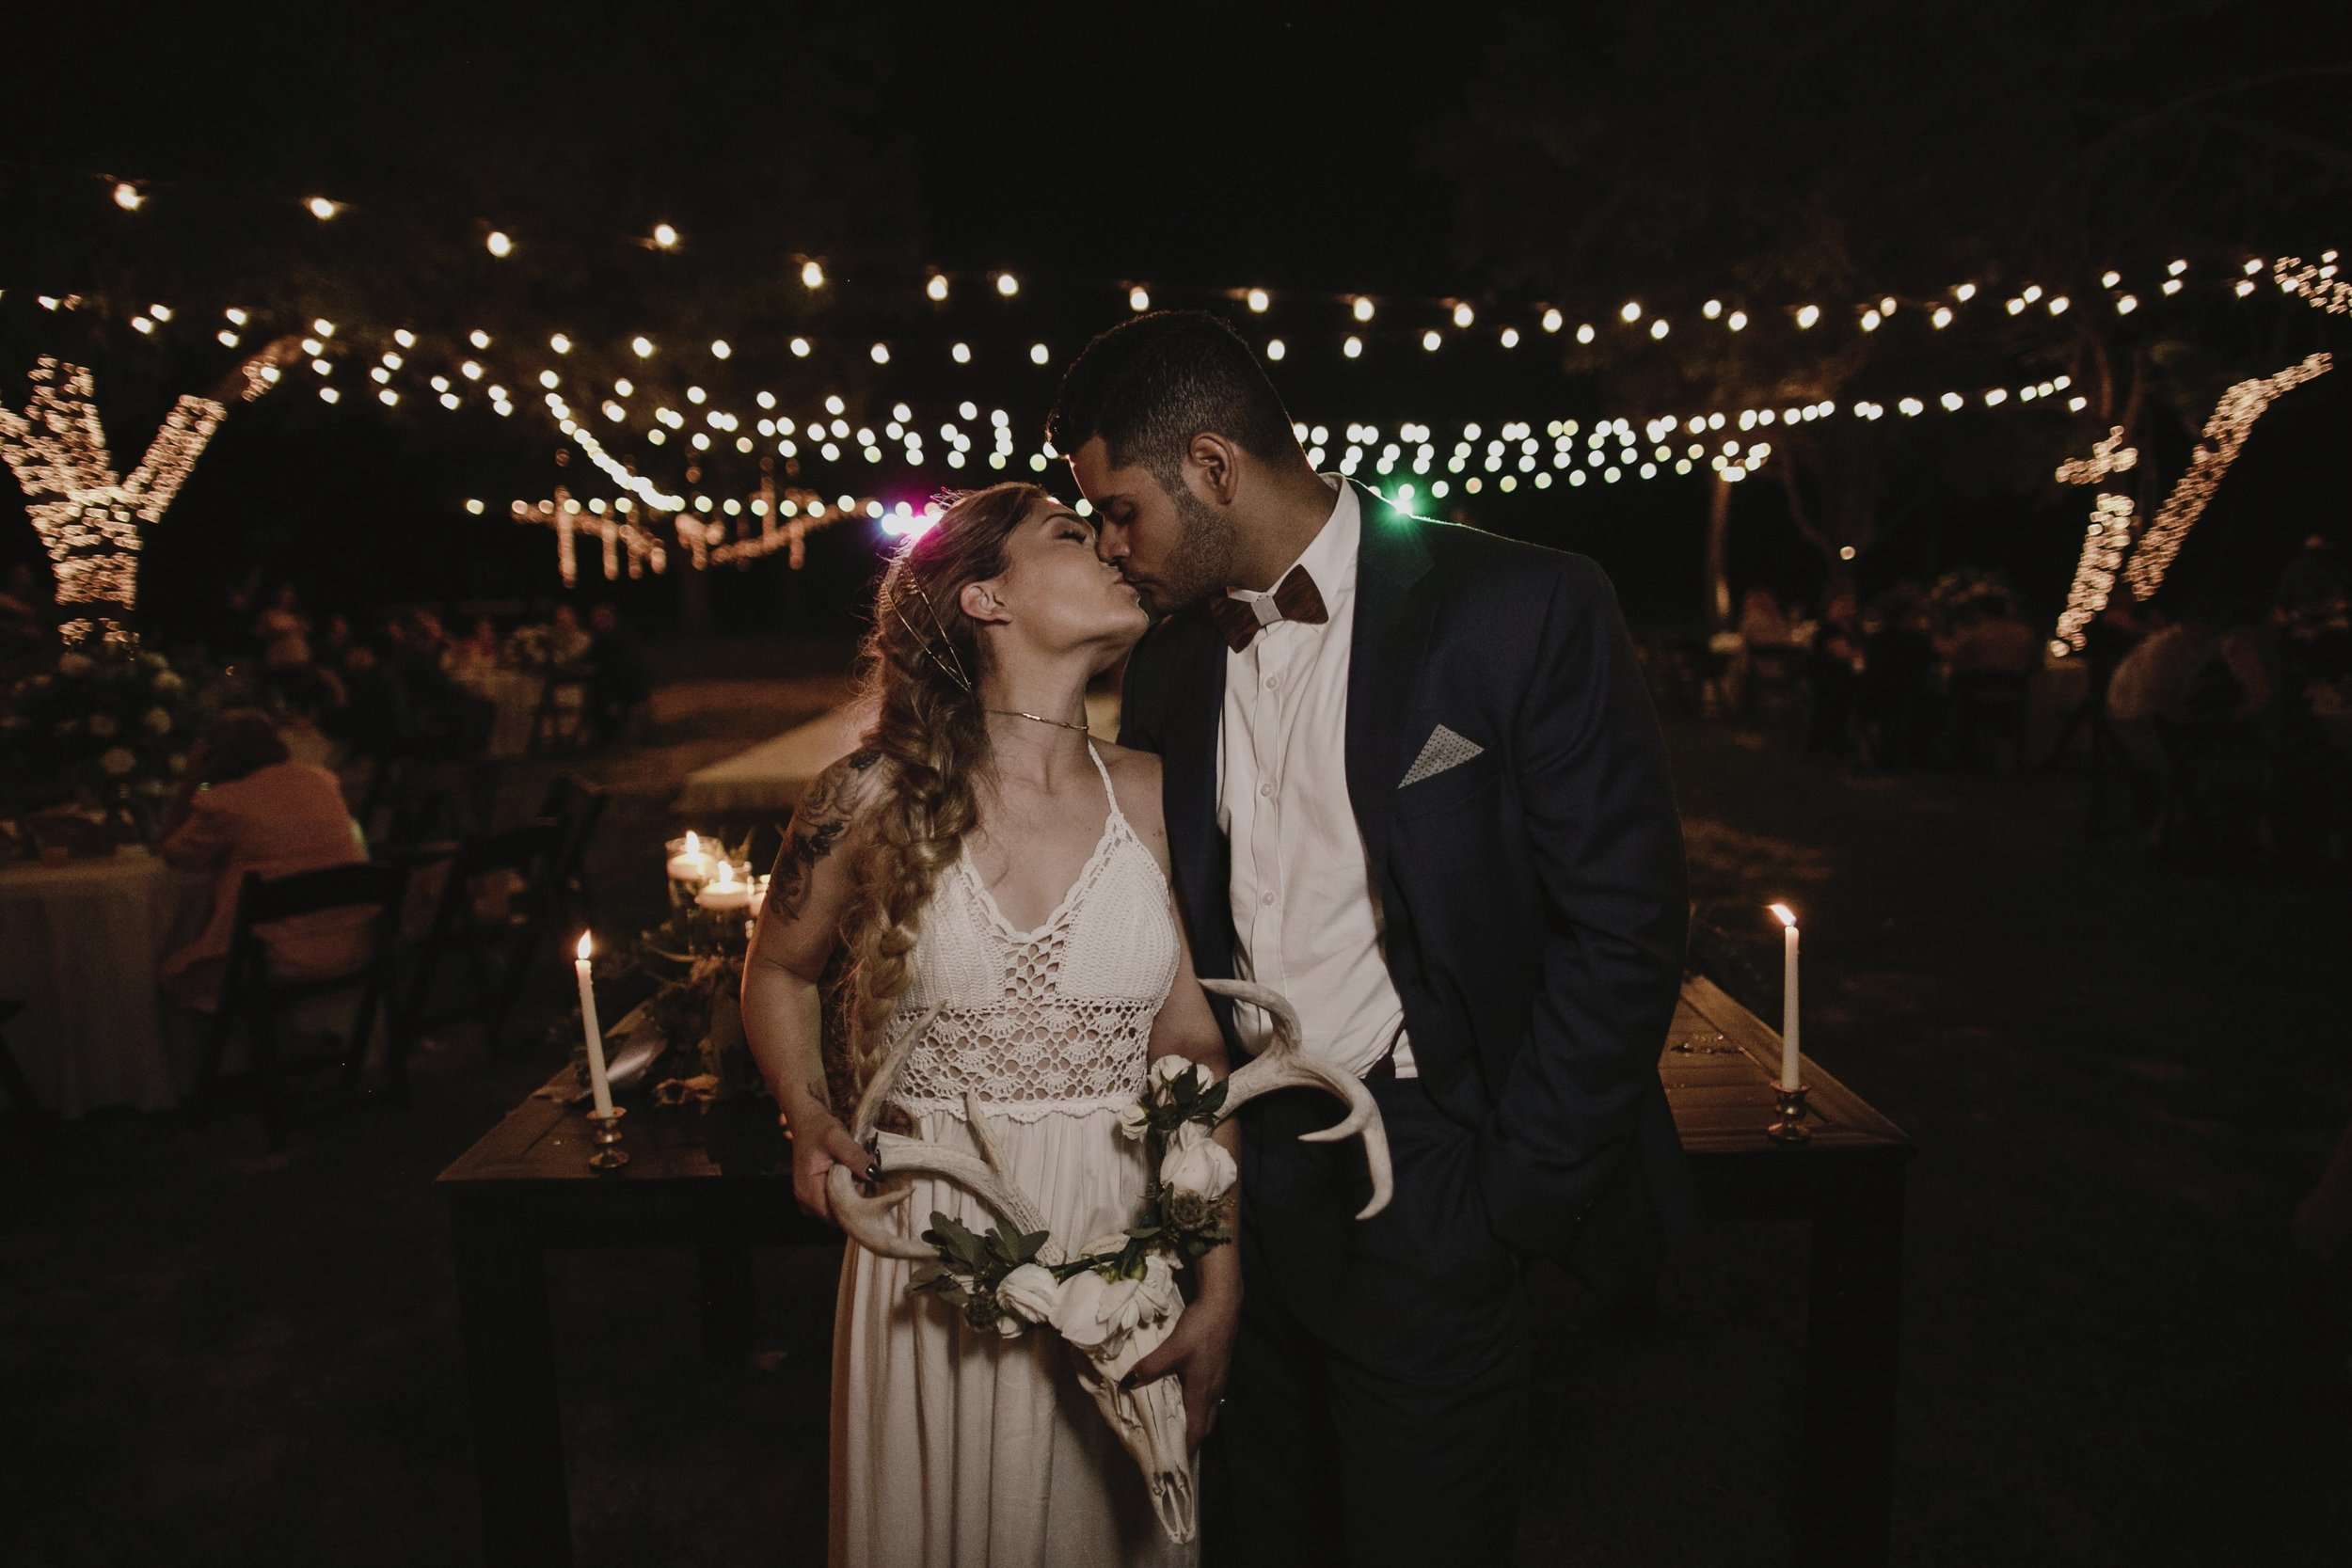 alfonso_flores_destination_wedding_photography_rancho_la_pergola_brownsville_texas76.jpg